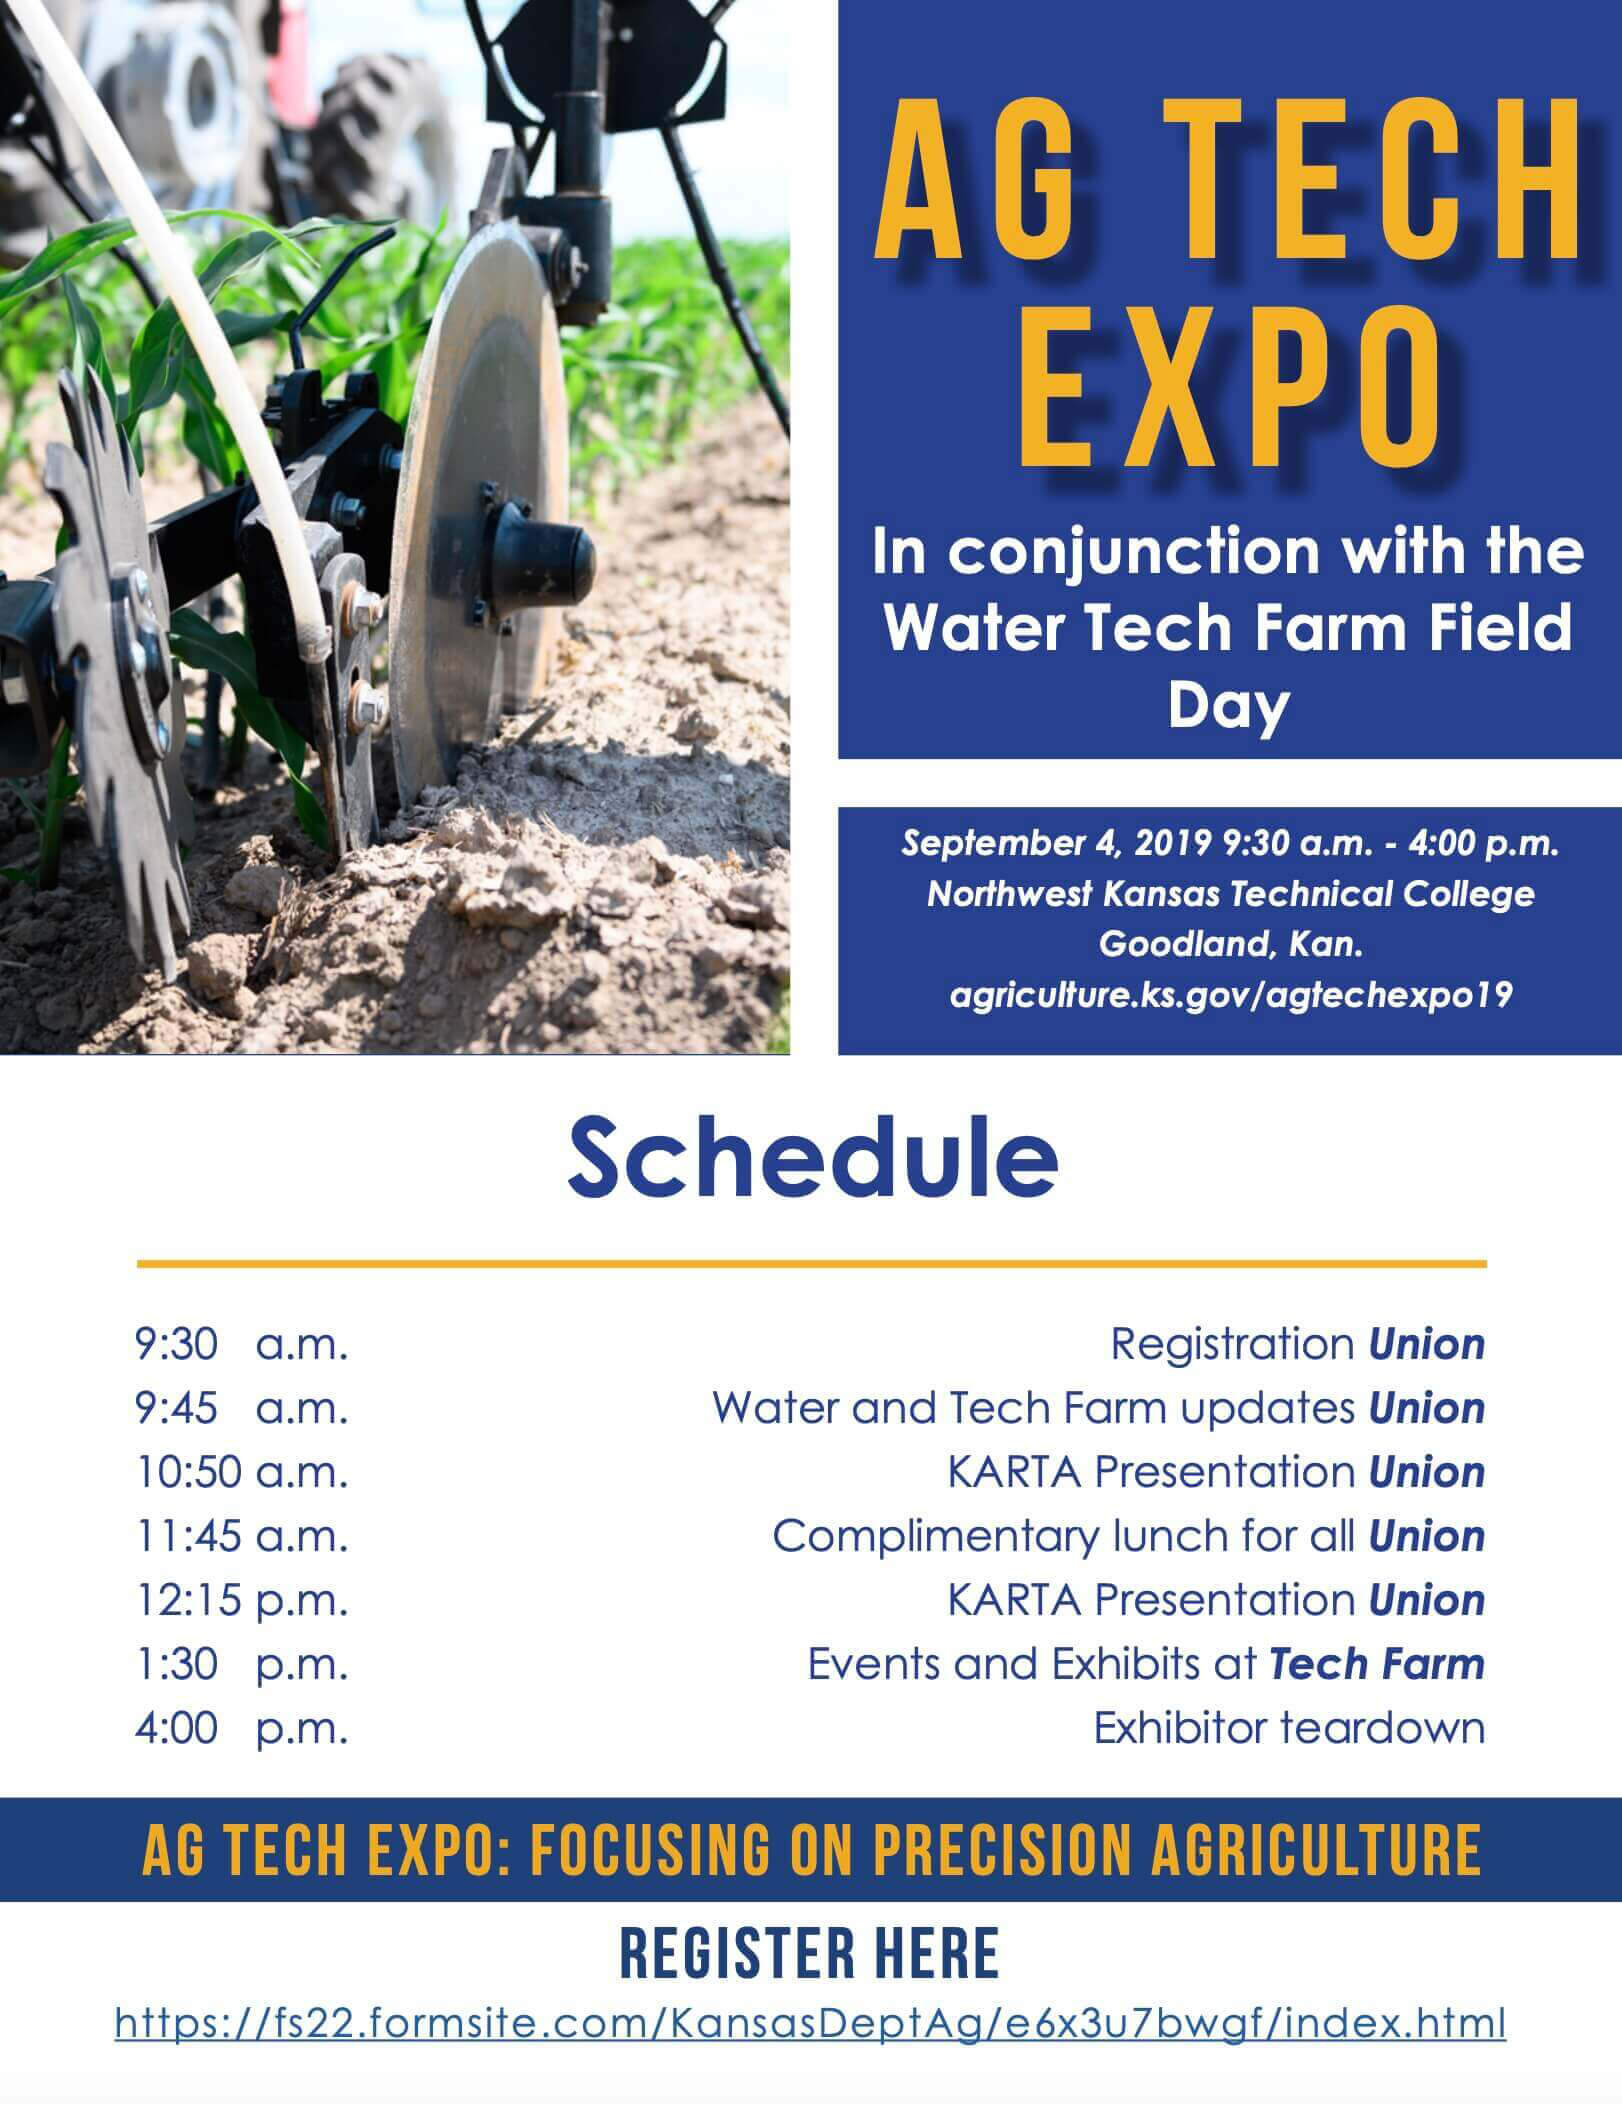 Ag Expo Poster